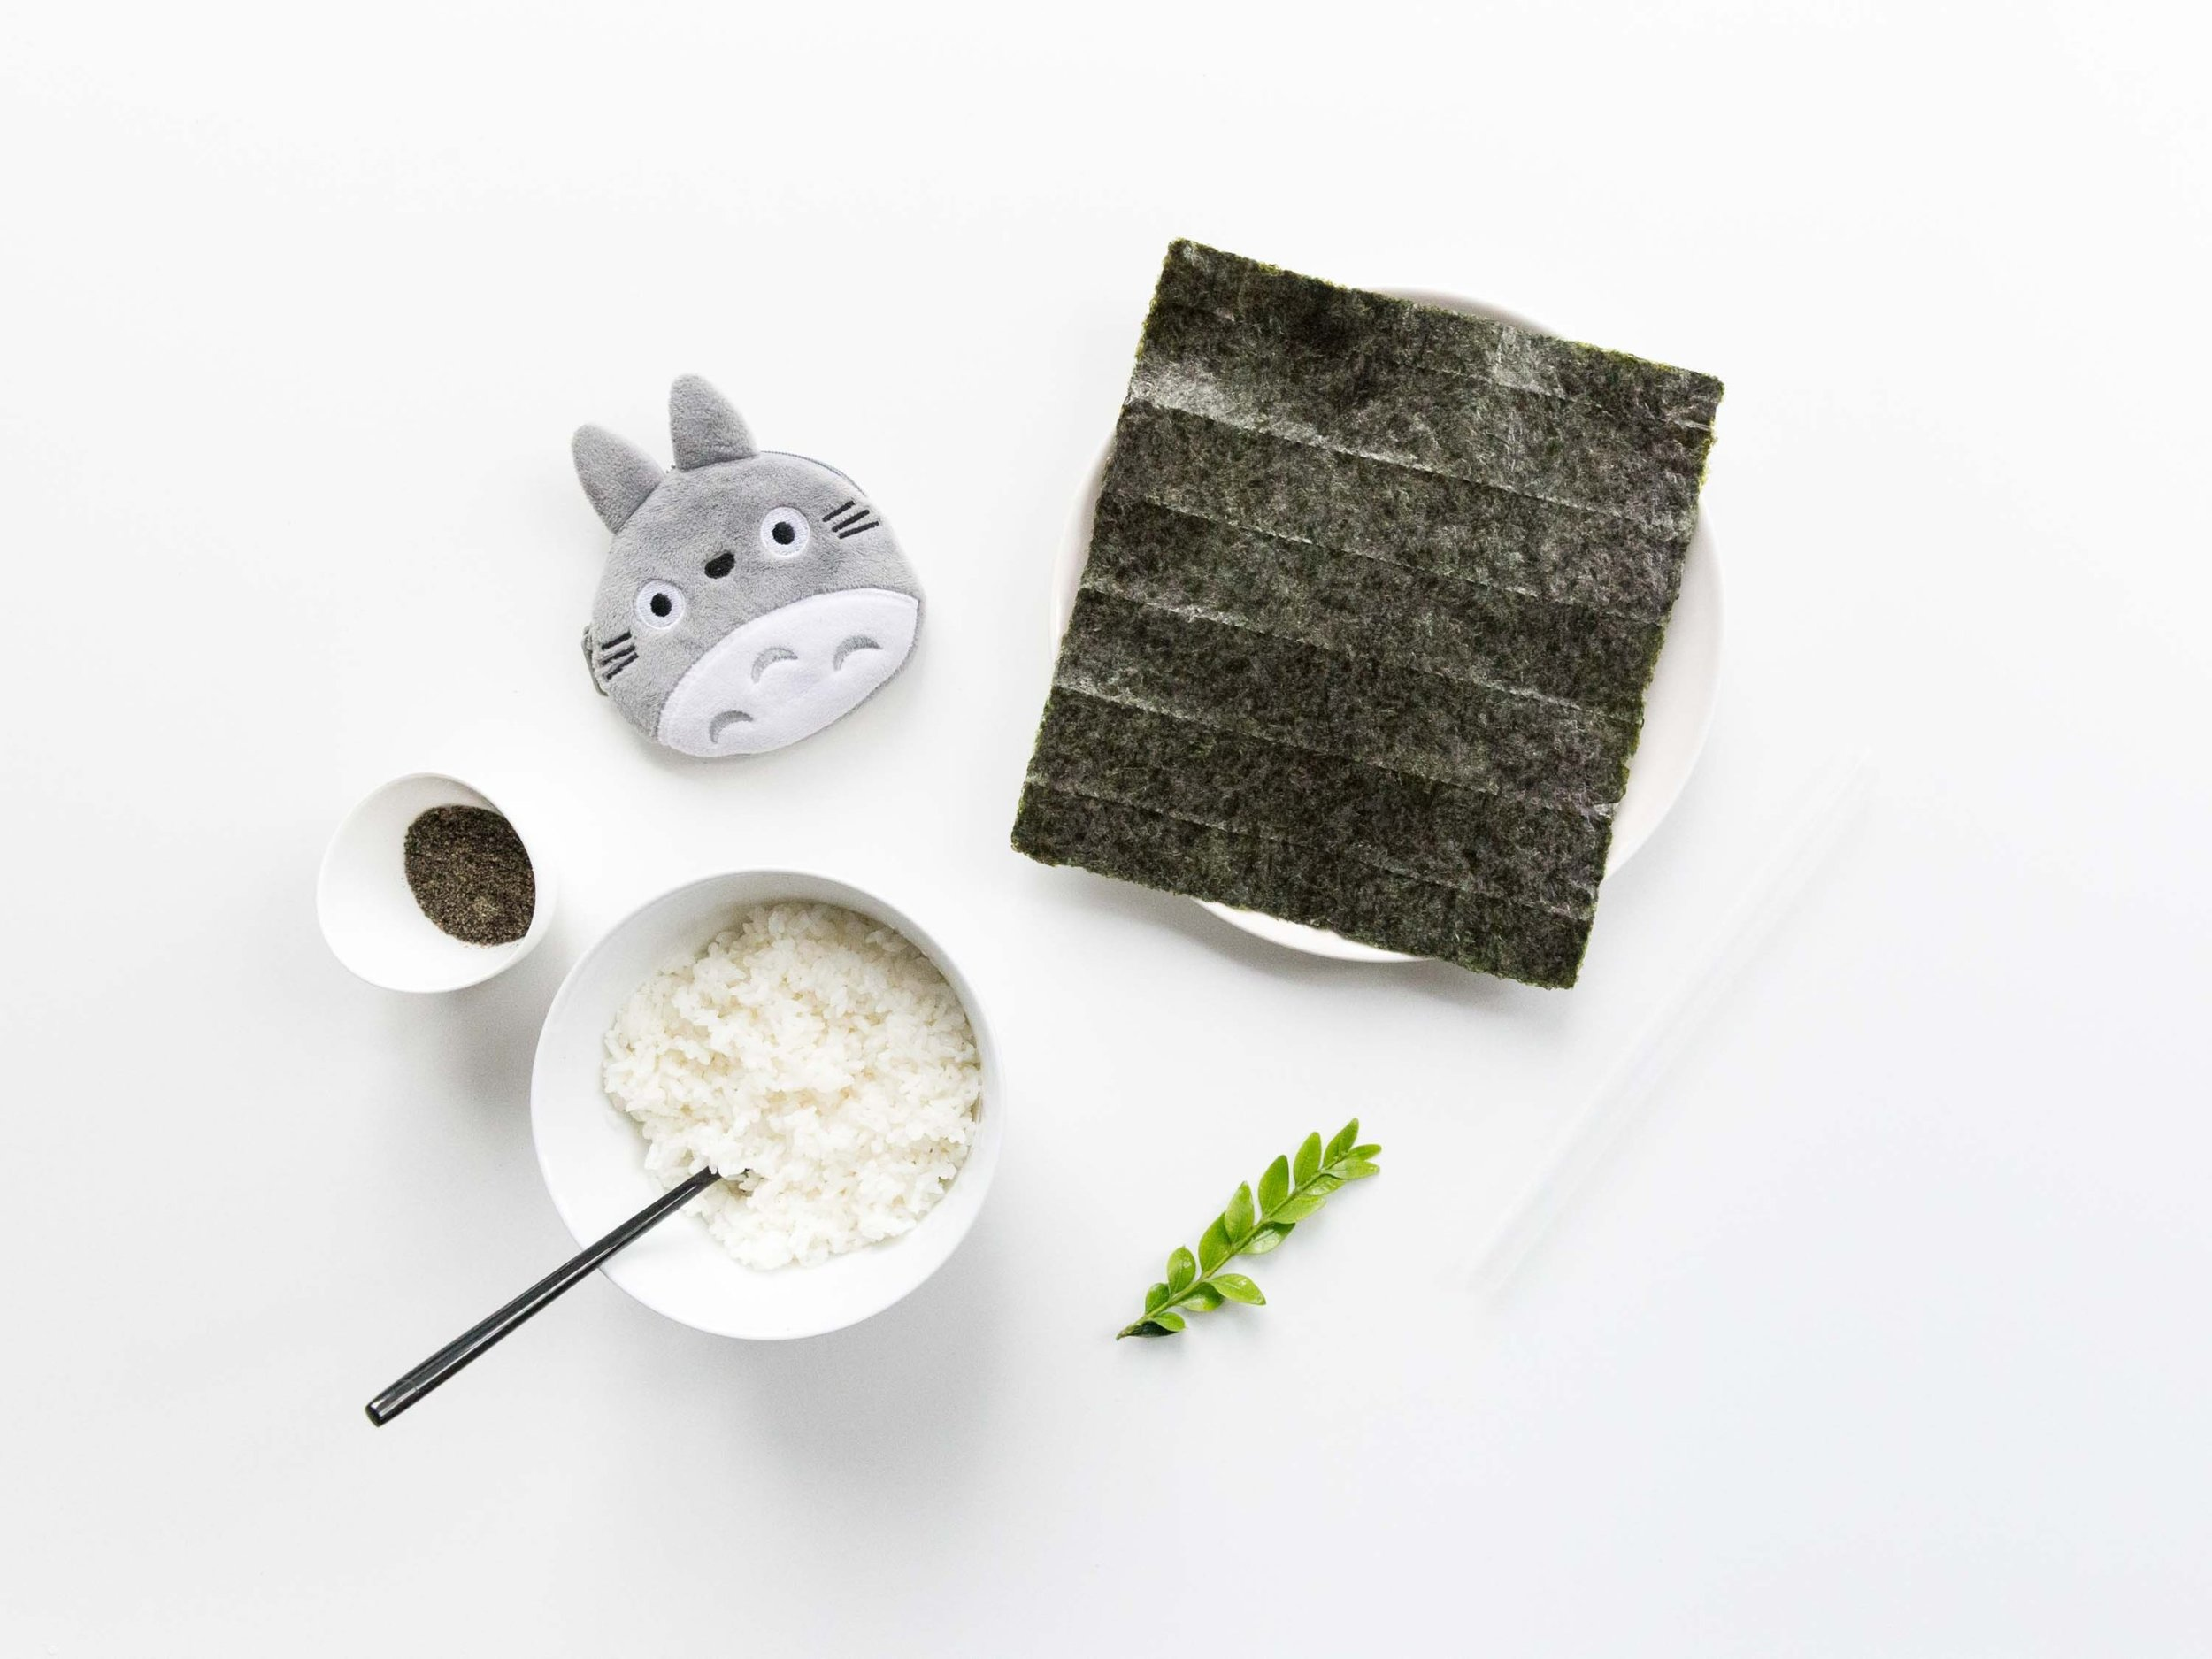 how_to_make_totoro_rice_cake_food_styling_2.jpg